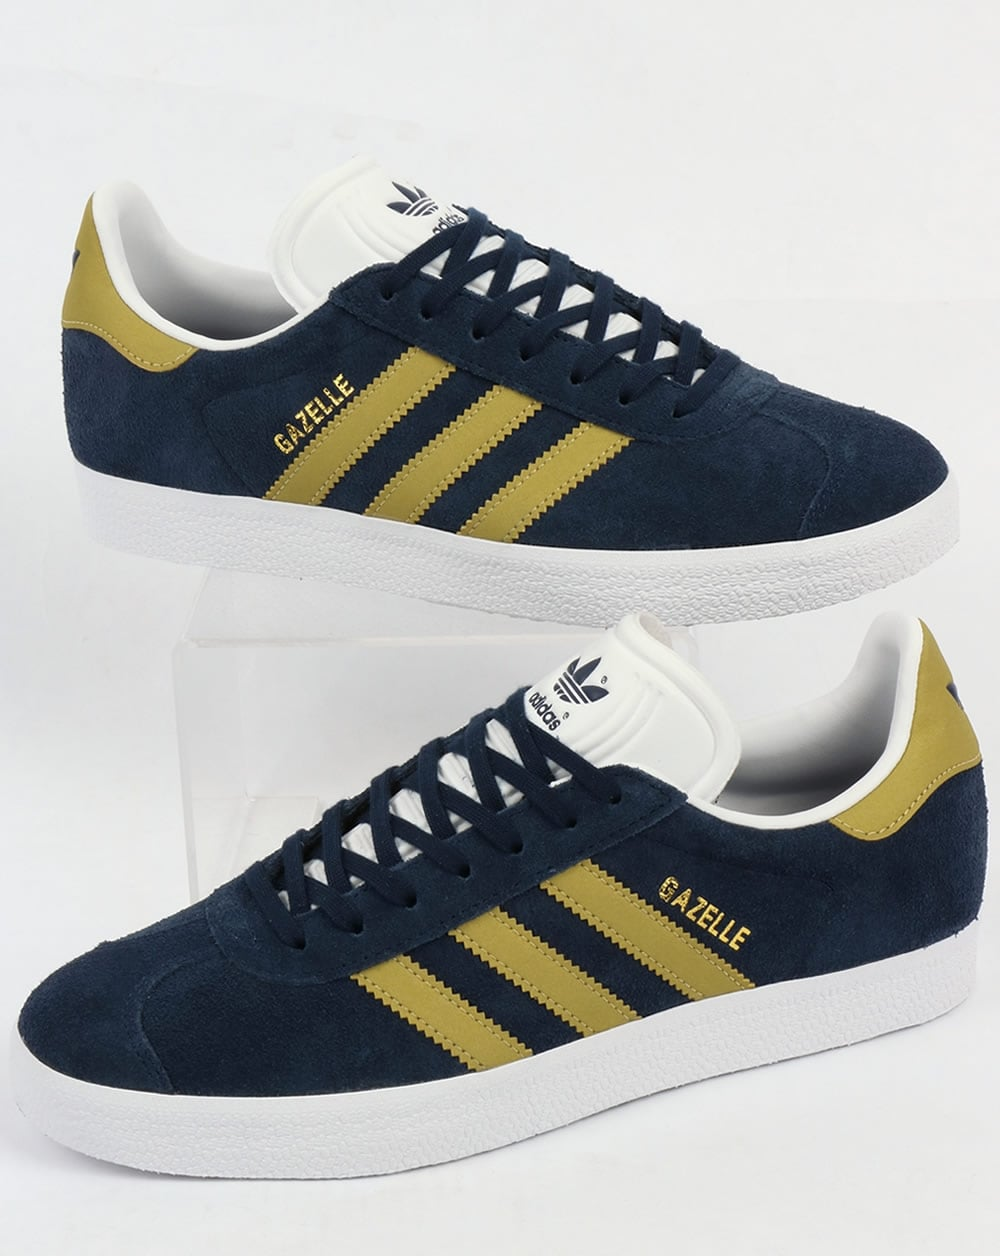 Gazelle Shoes Adidas Sale